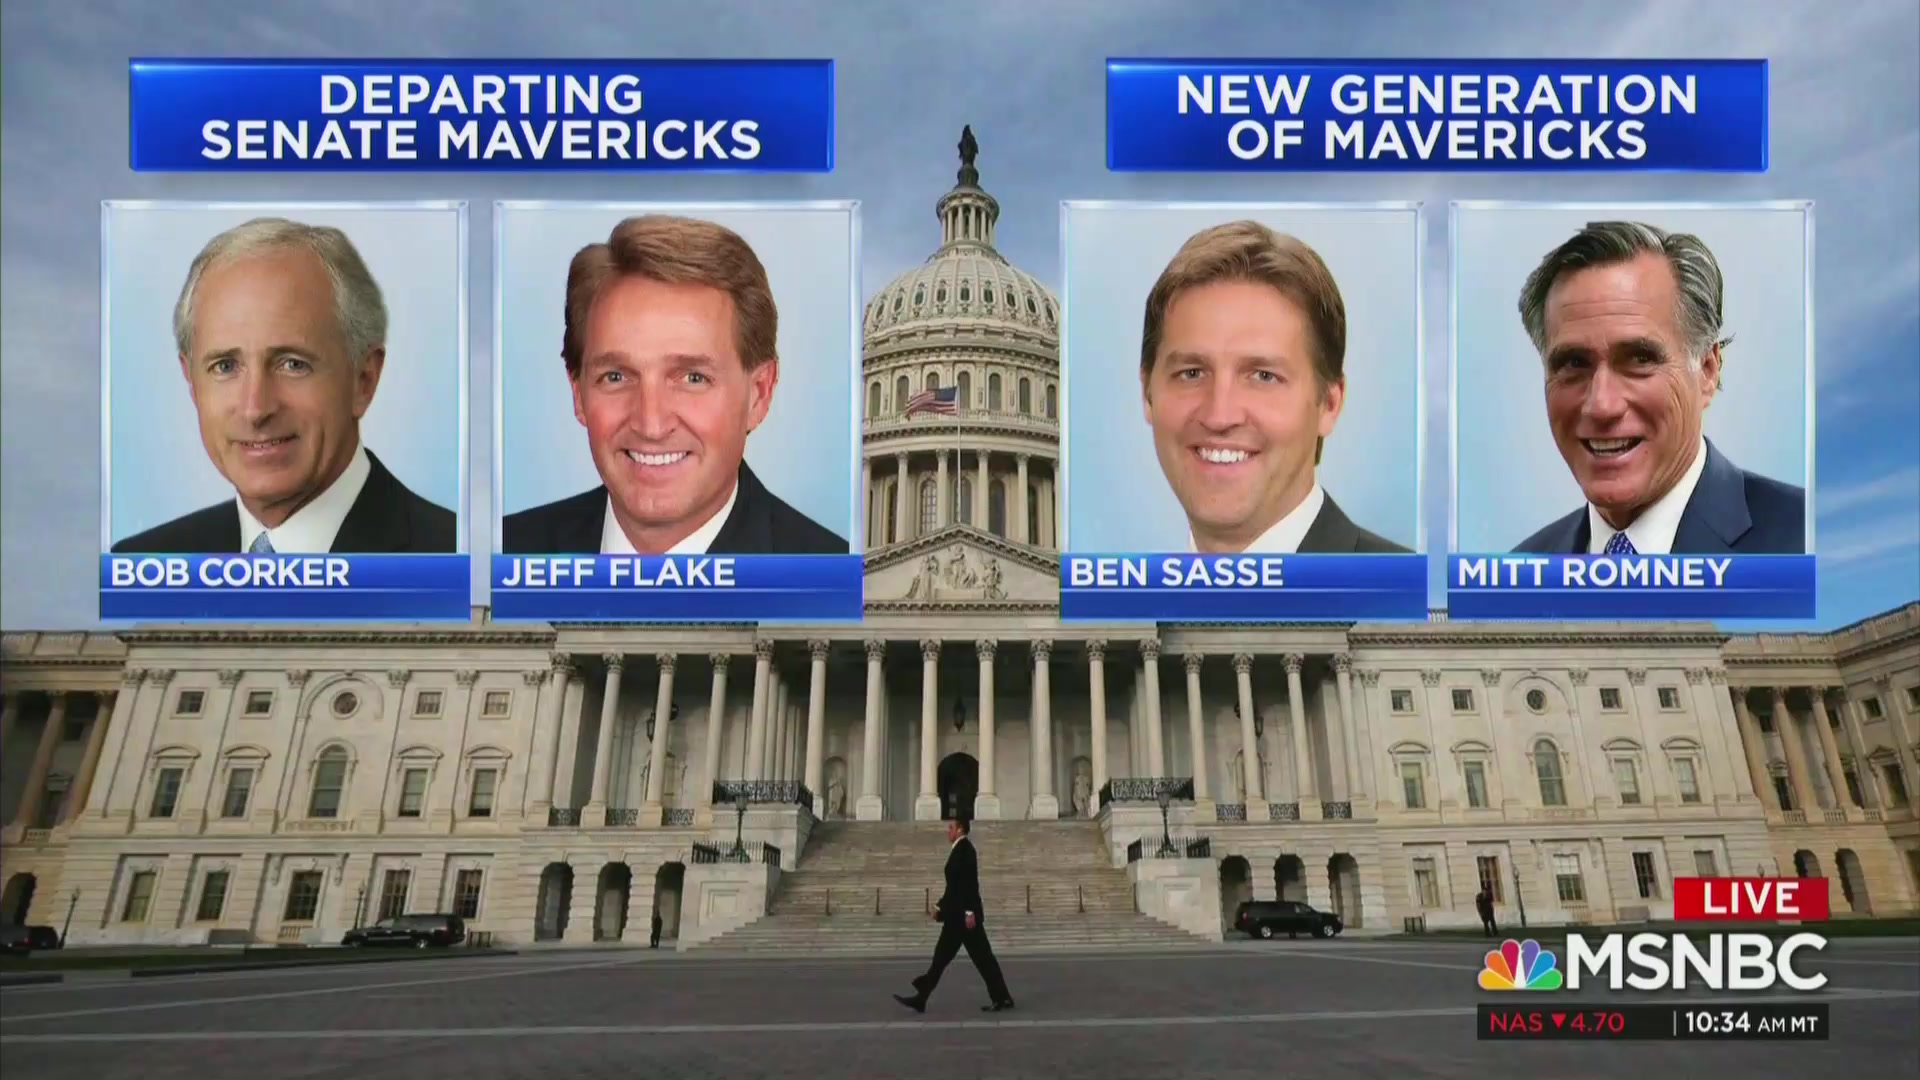 MSNBC Draws Fire For Describing Romney And Sasse As 'New Generation Of Mavericks'